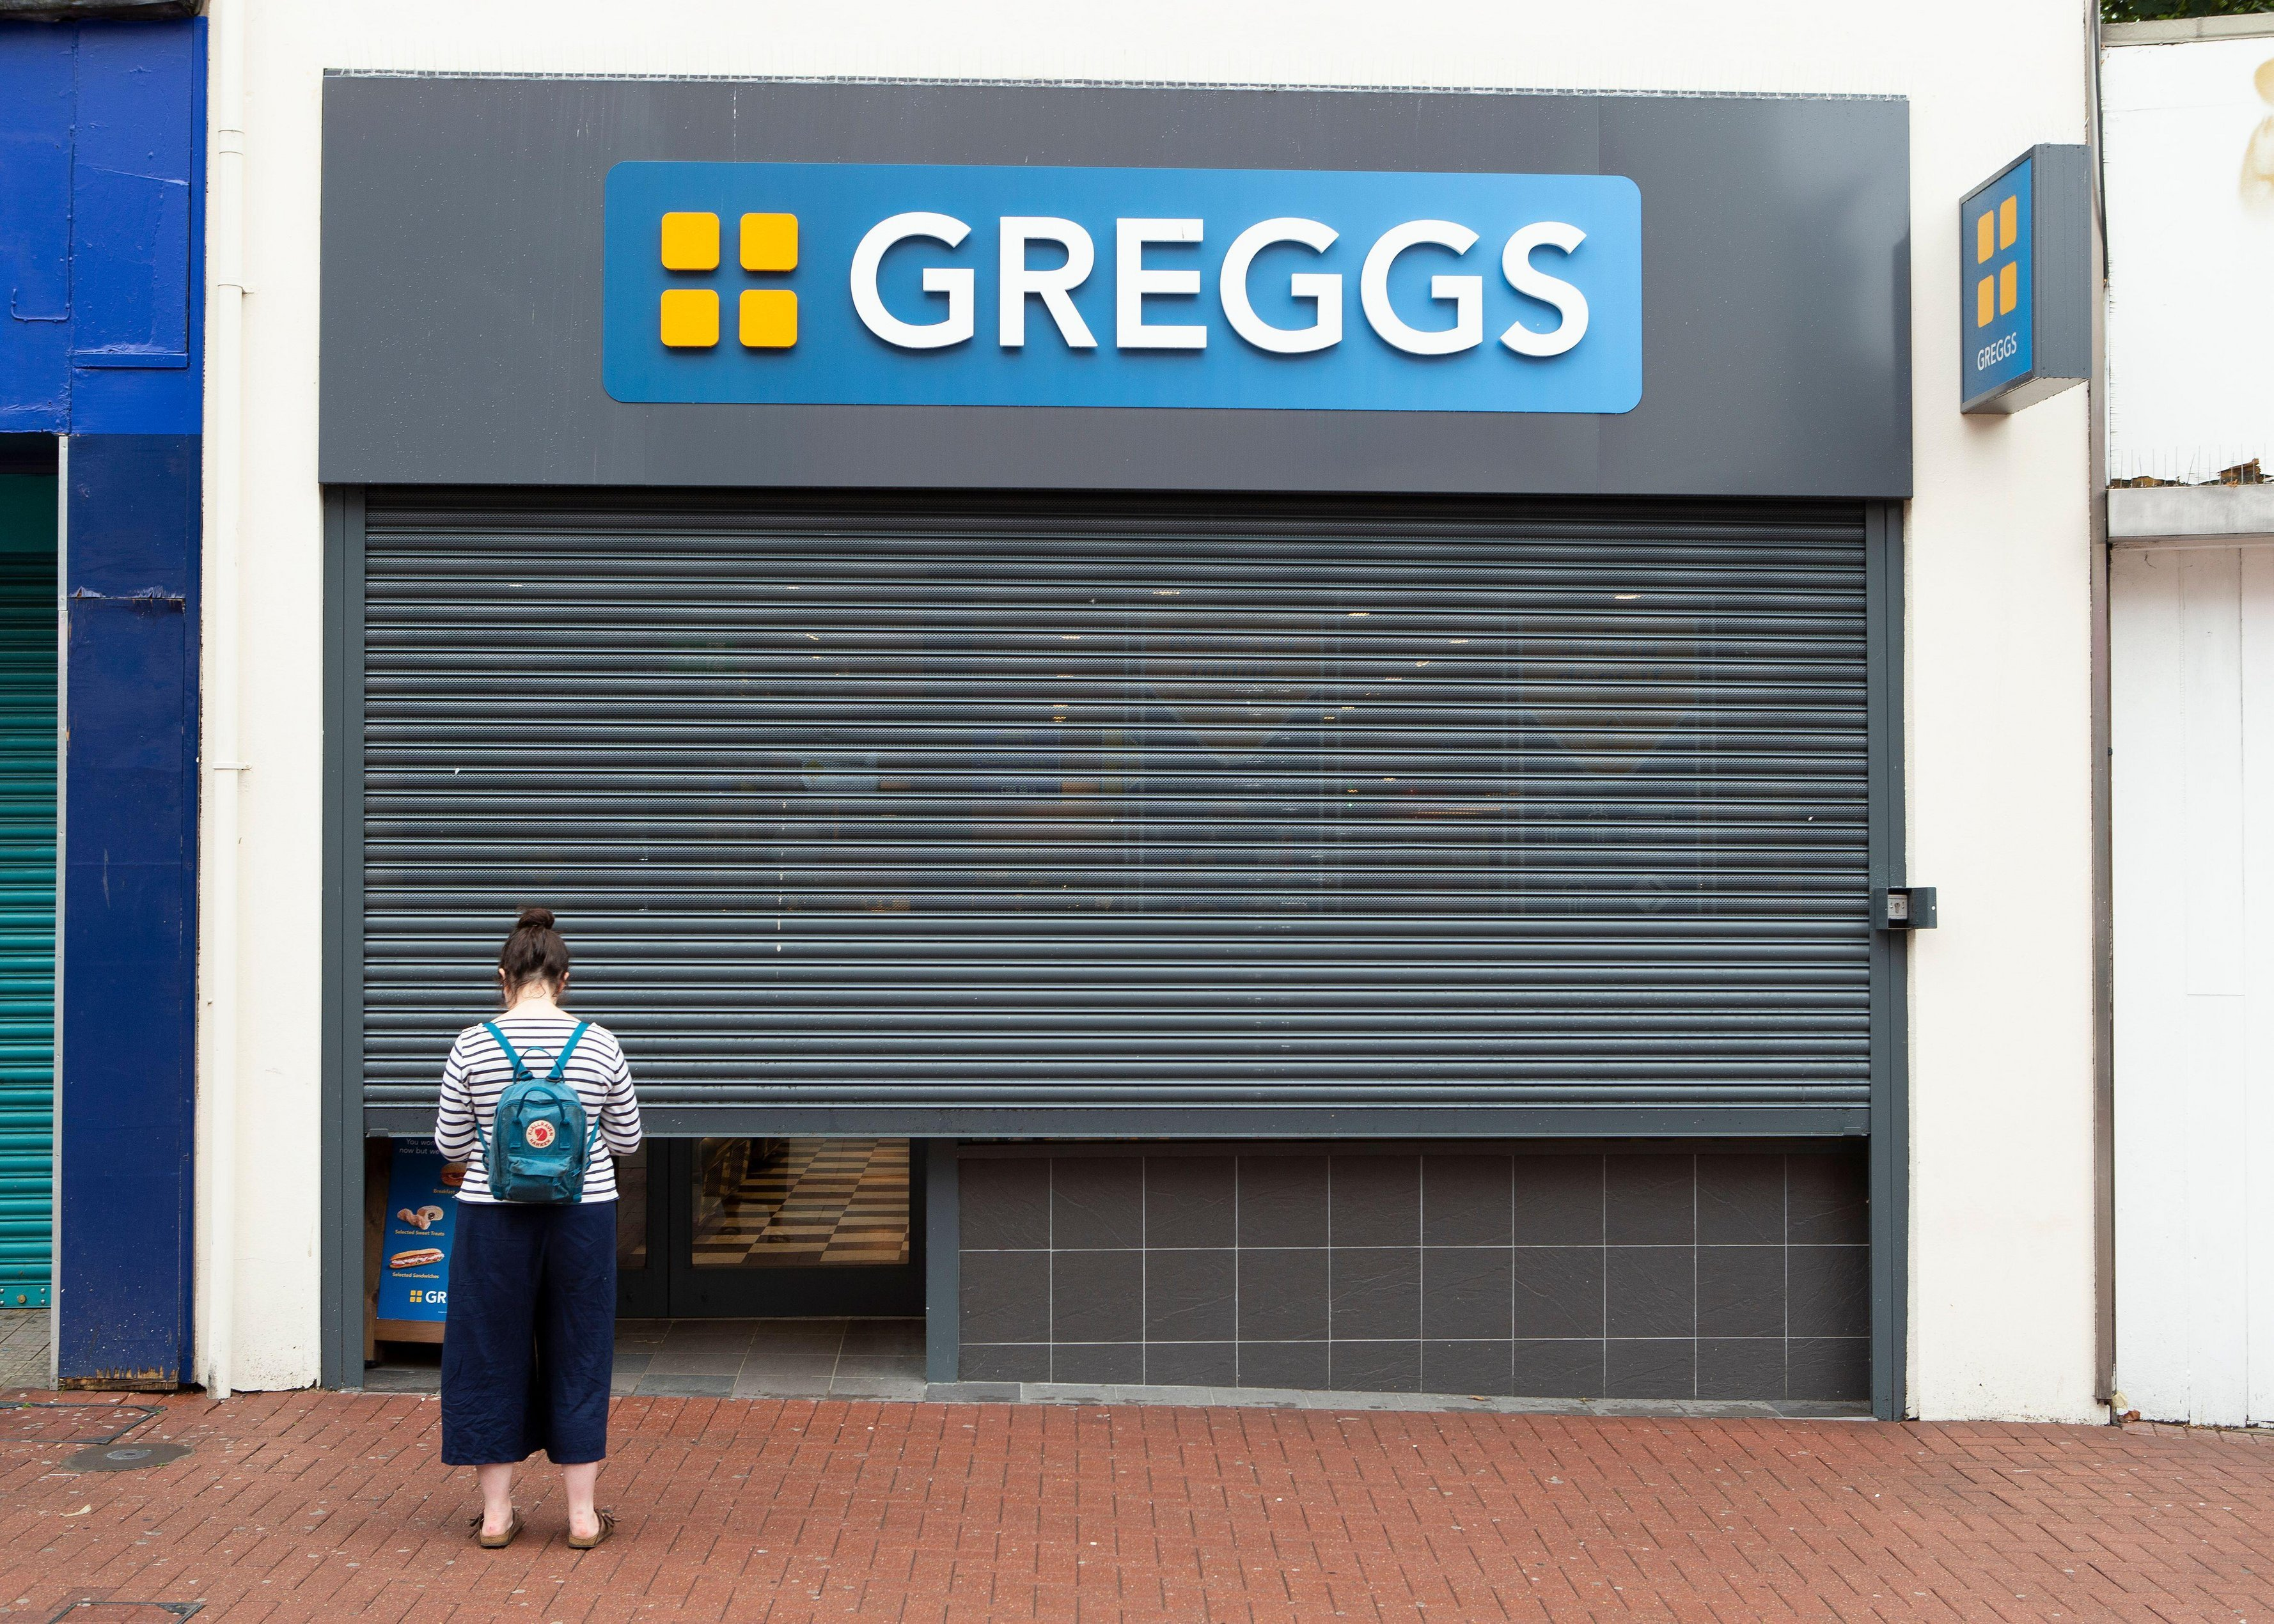 Greggs is among the major chains that won't reopen for dine-in customers this weekend